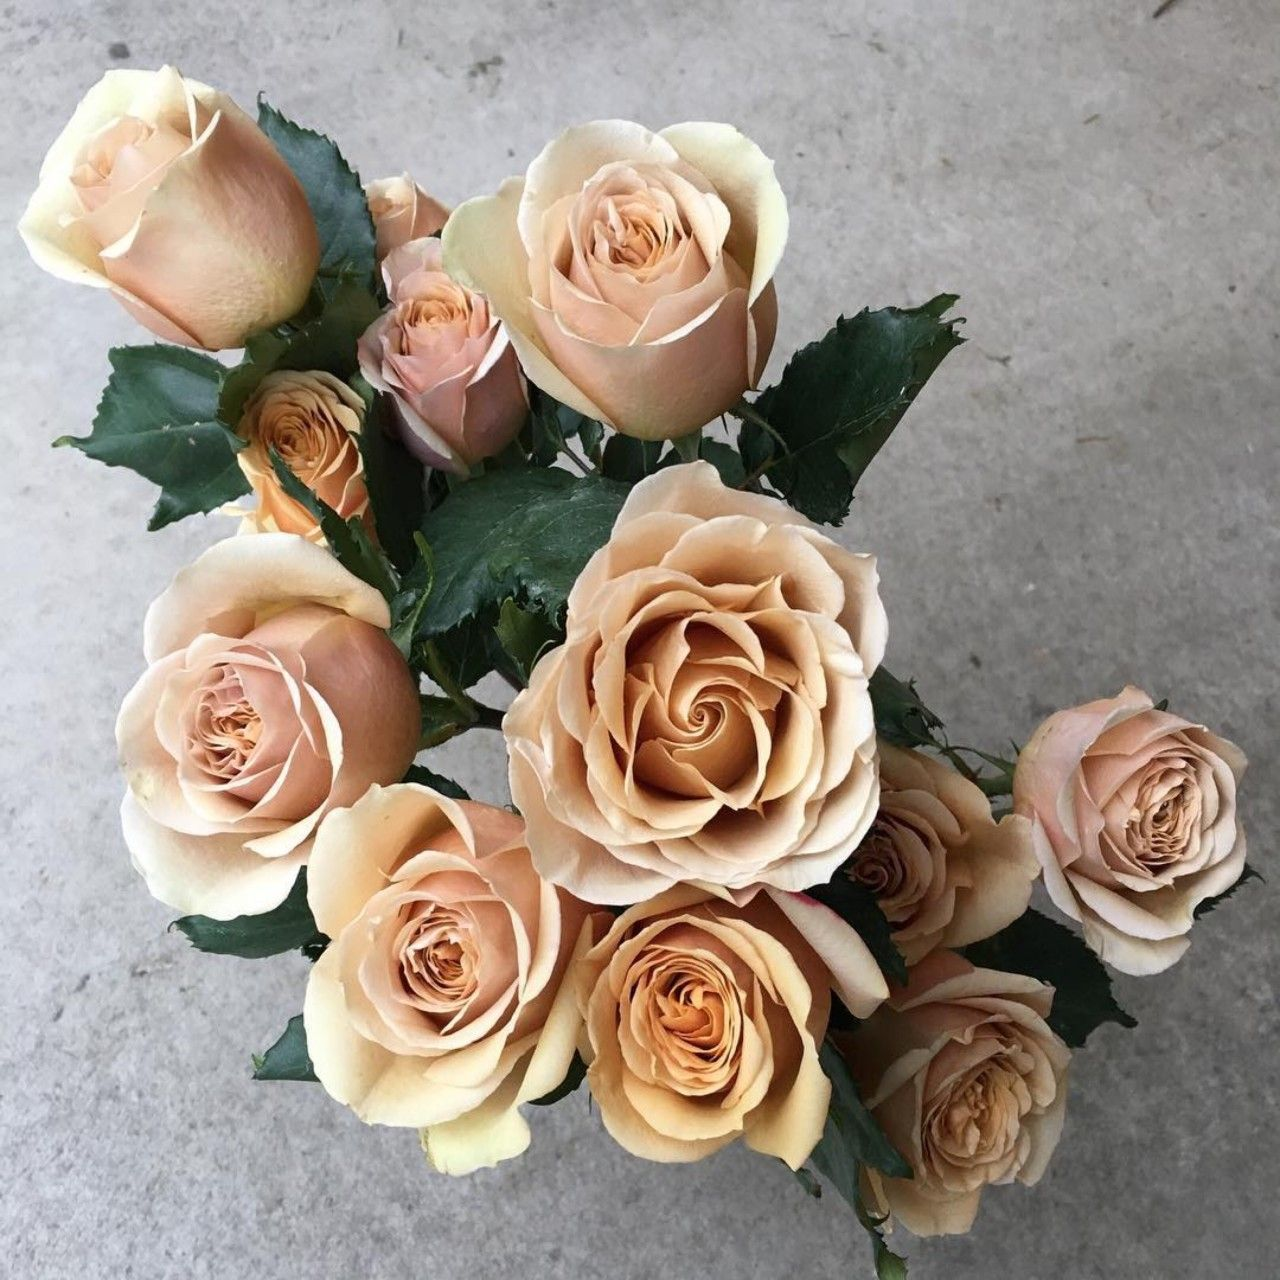 Golden Mustard is a Dutch rose with a tawny hue the color of mustard seeds, which is truly unique and unforgettable. You may notice shades of yellow, gold and even light pink in the petals. She has a medium-sized head and a high centered bloom. Learn more about this variety at (photo by Garden Roses Direct) #goldenmustardroses #gardenroses #rose #flowers #flowersofinstagram #rosesofinstagram #deluxegardenroses